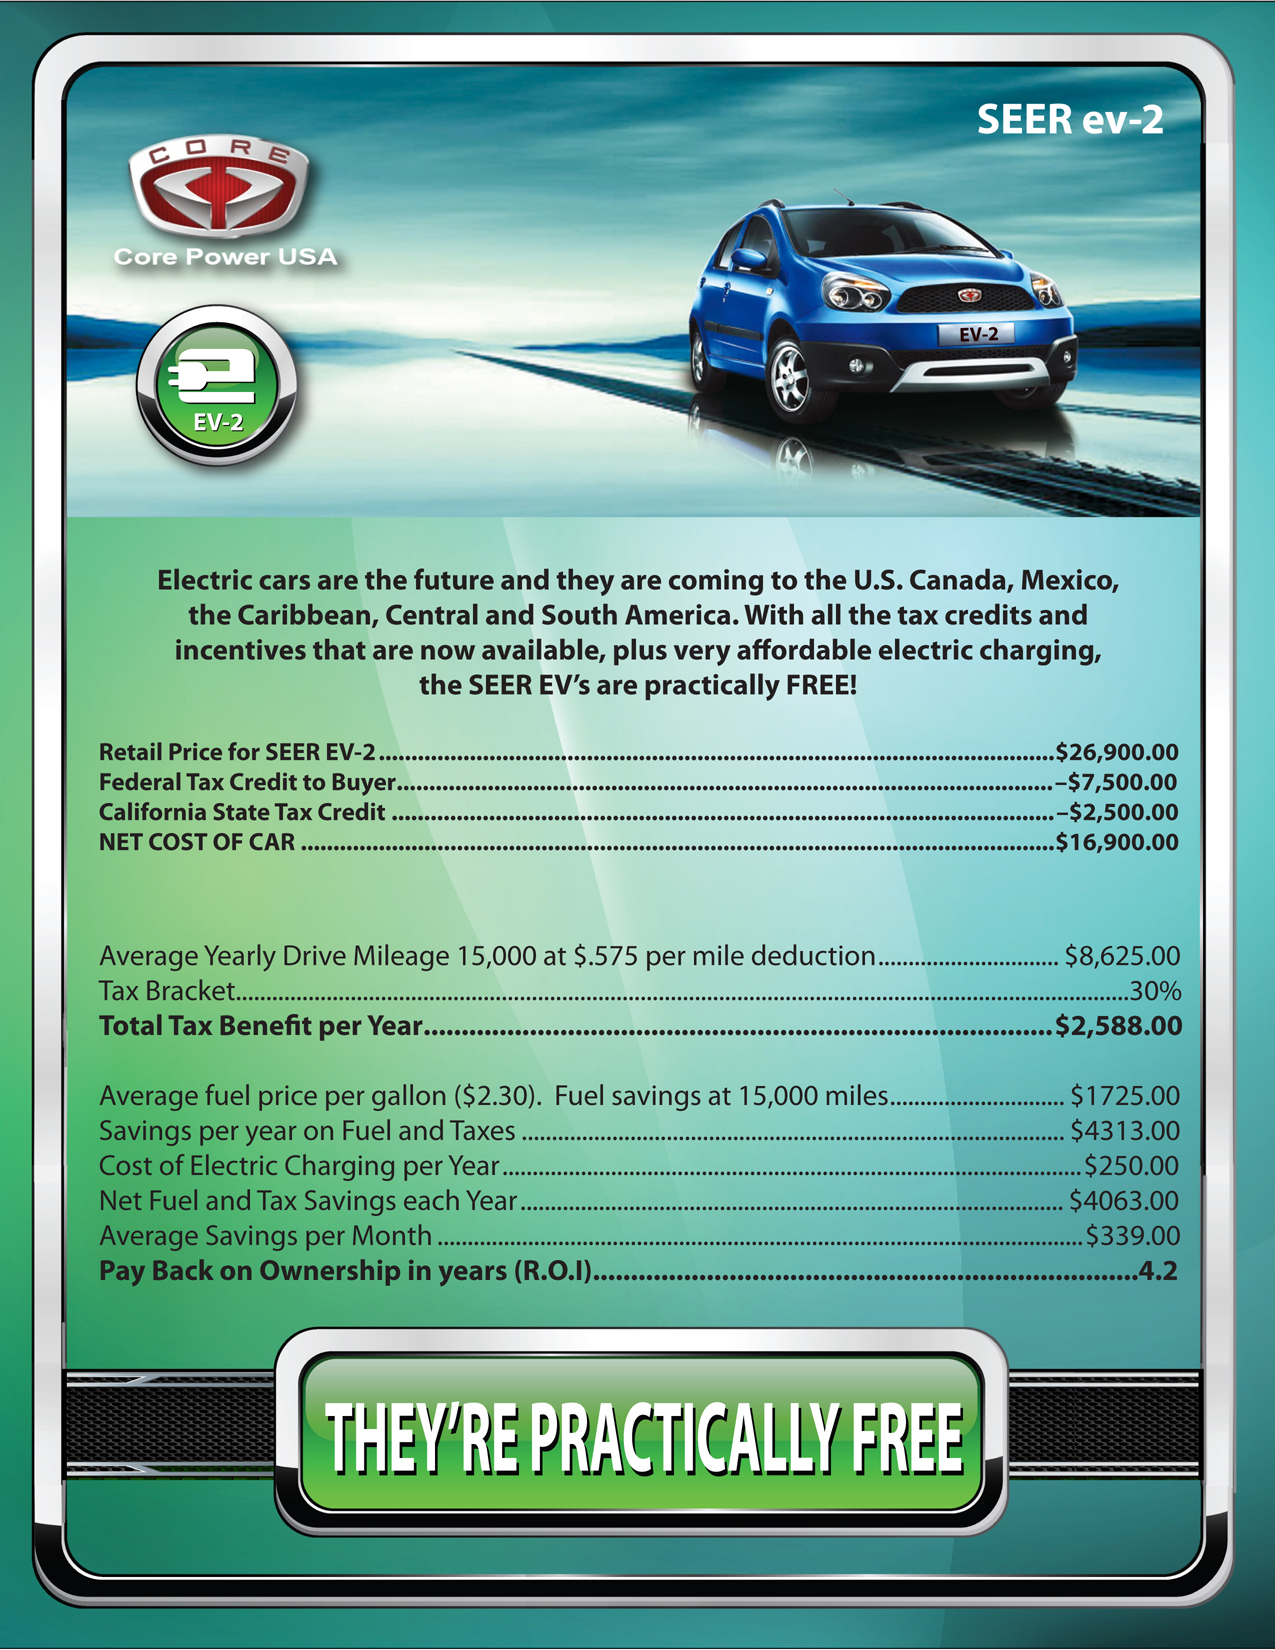 Core Power USA EV-2 Incentives